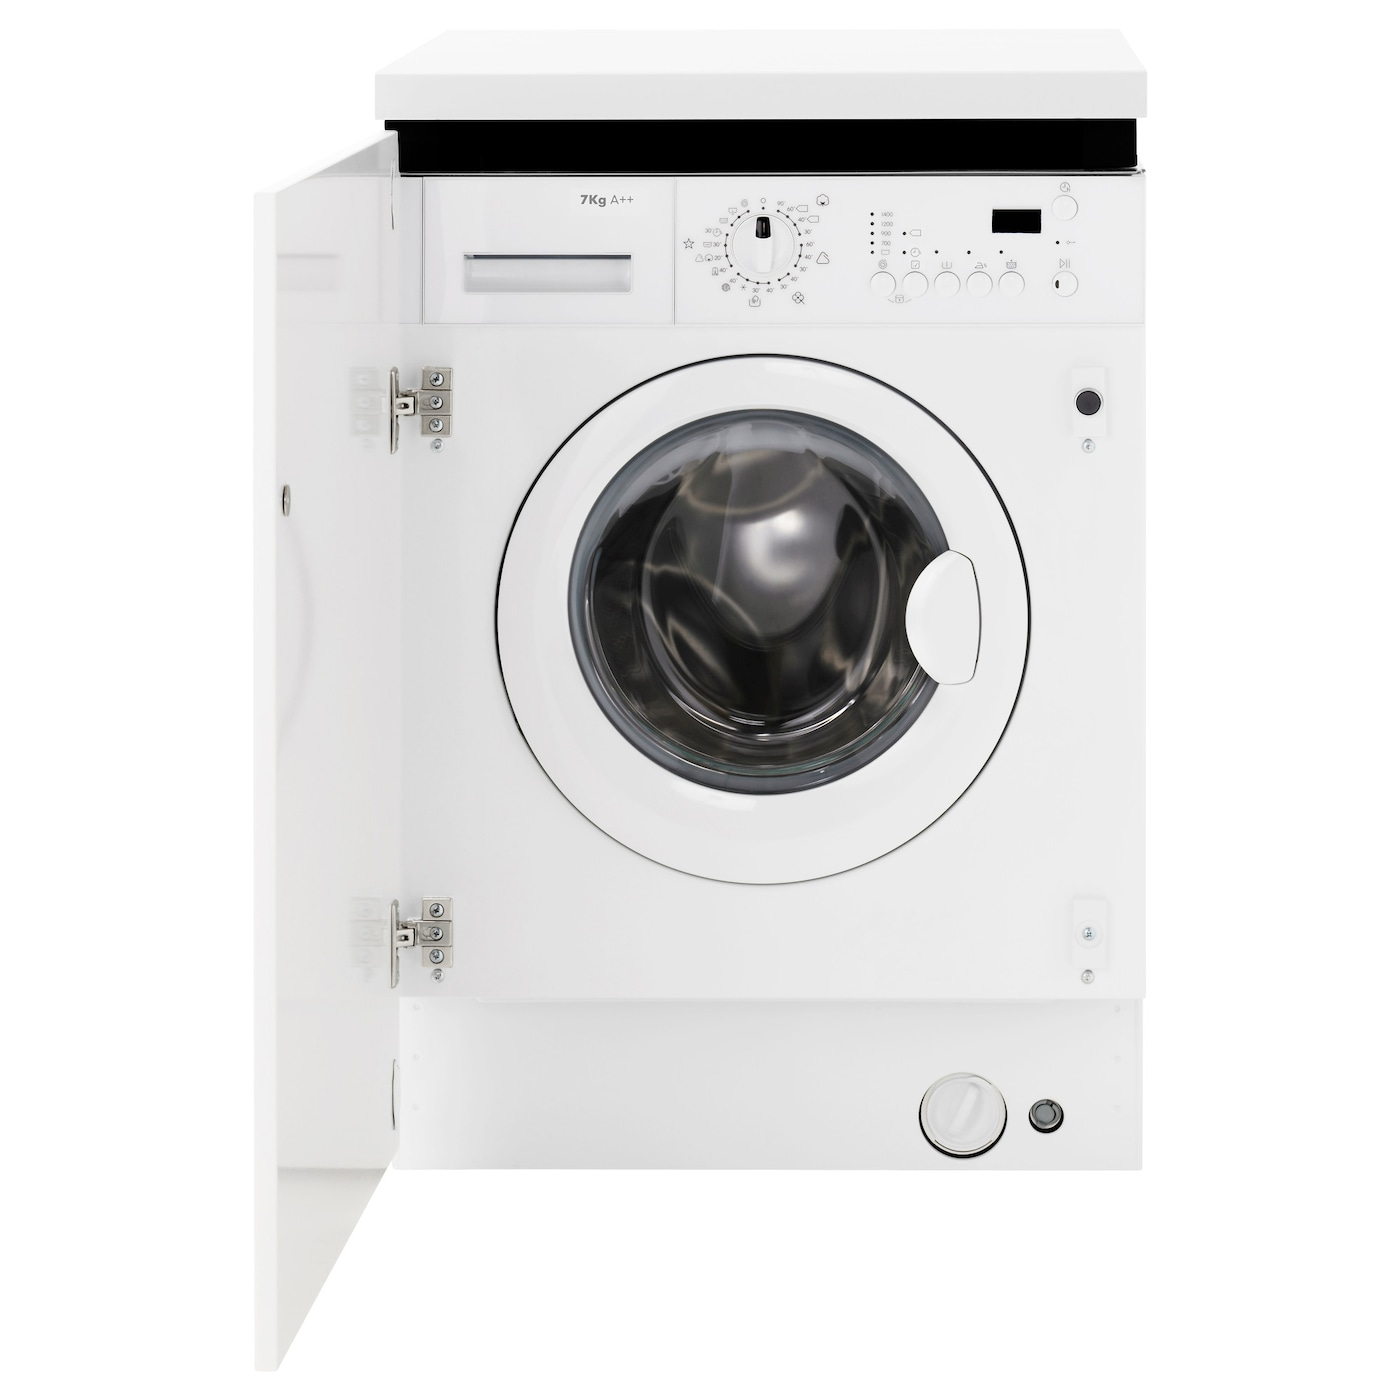 IKEA RENLIG integrated washing machine